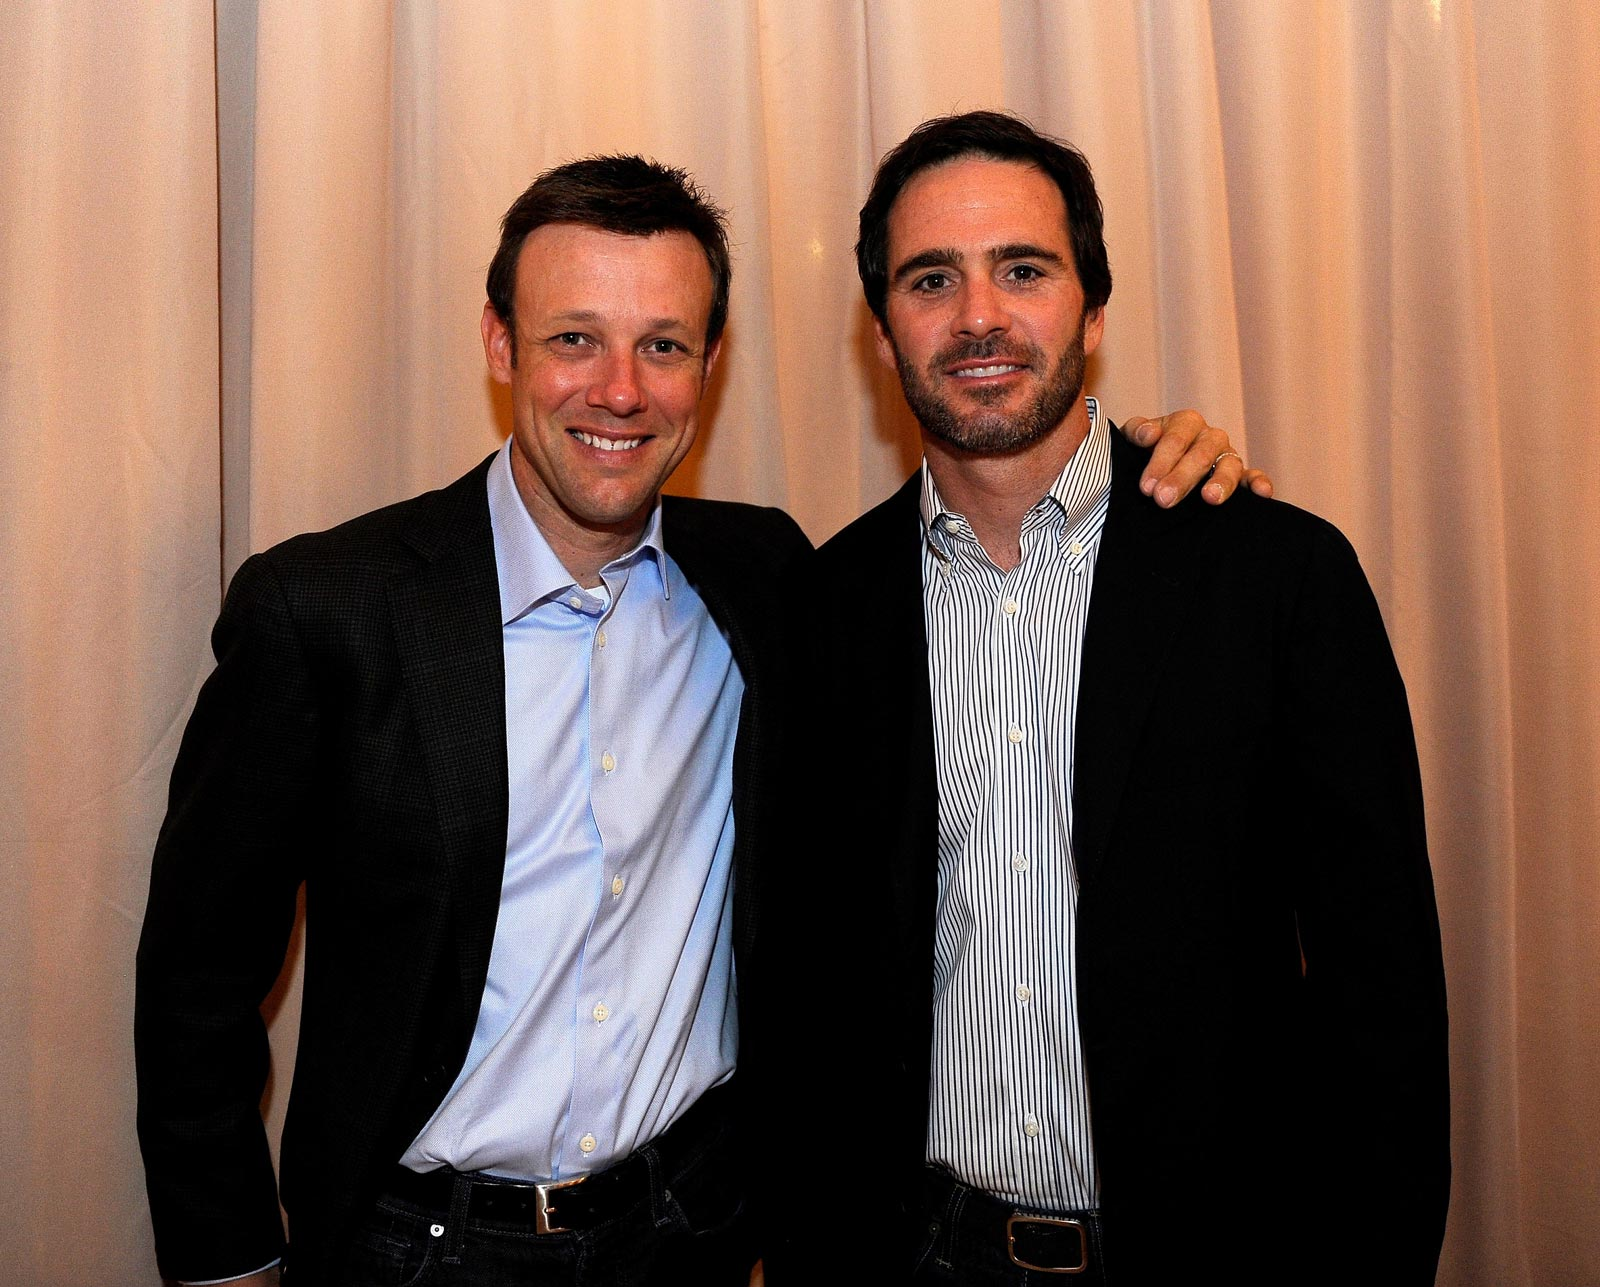 ChaseDriversDinner_Jimmy-Johnson_Matt-Kenseth